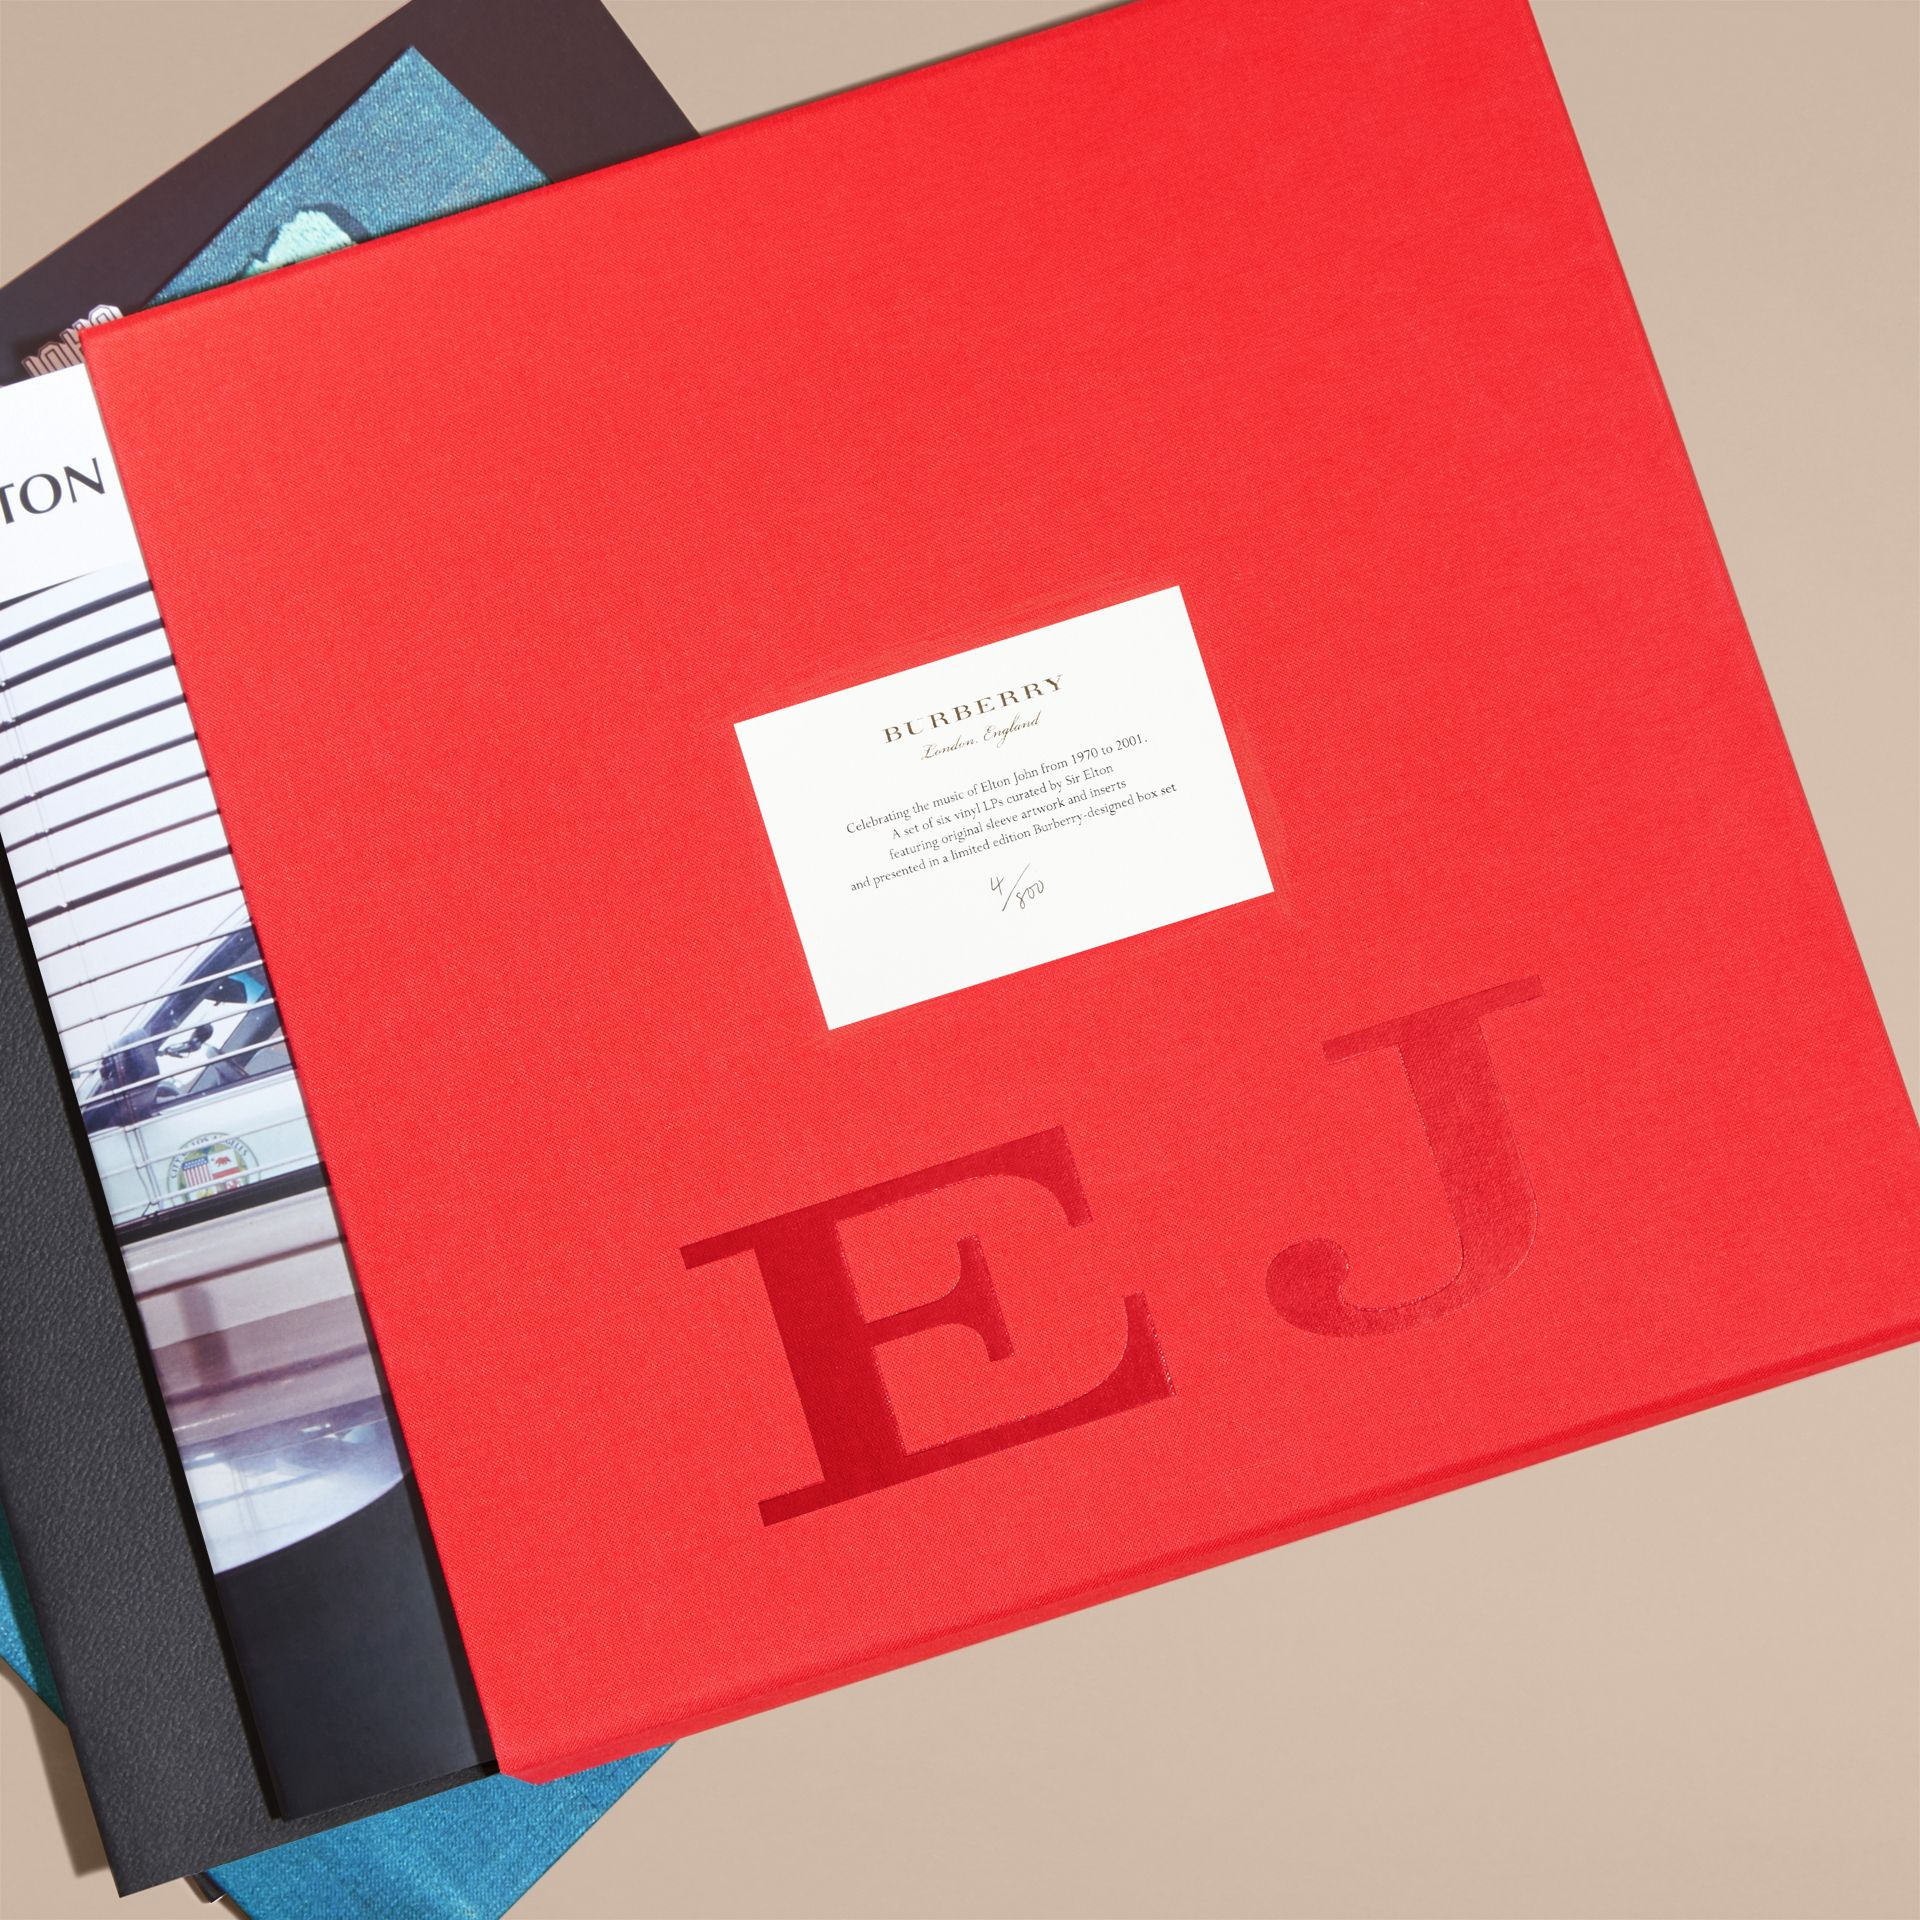 Multicolour Elton John: A Limited Edition Vinyl Box Set for Burberry - gallery image 2